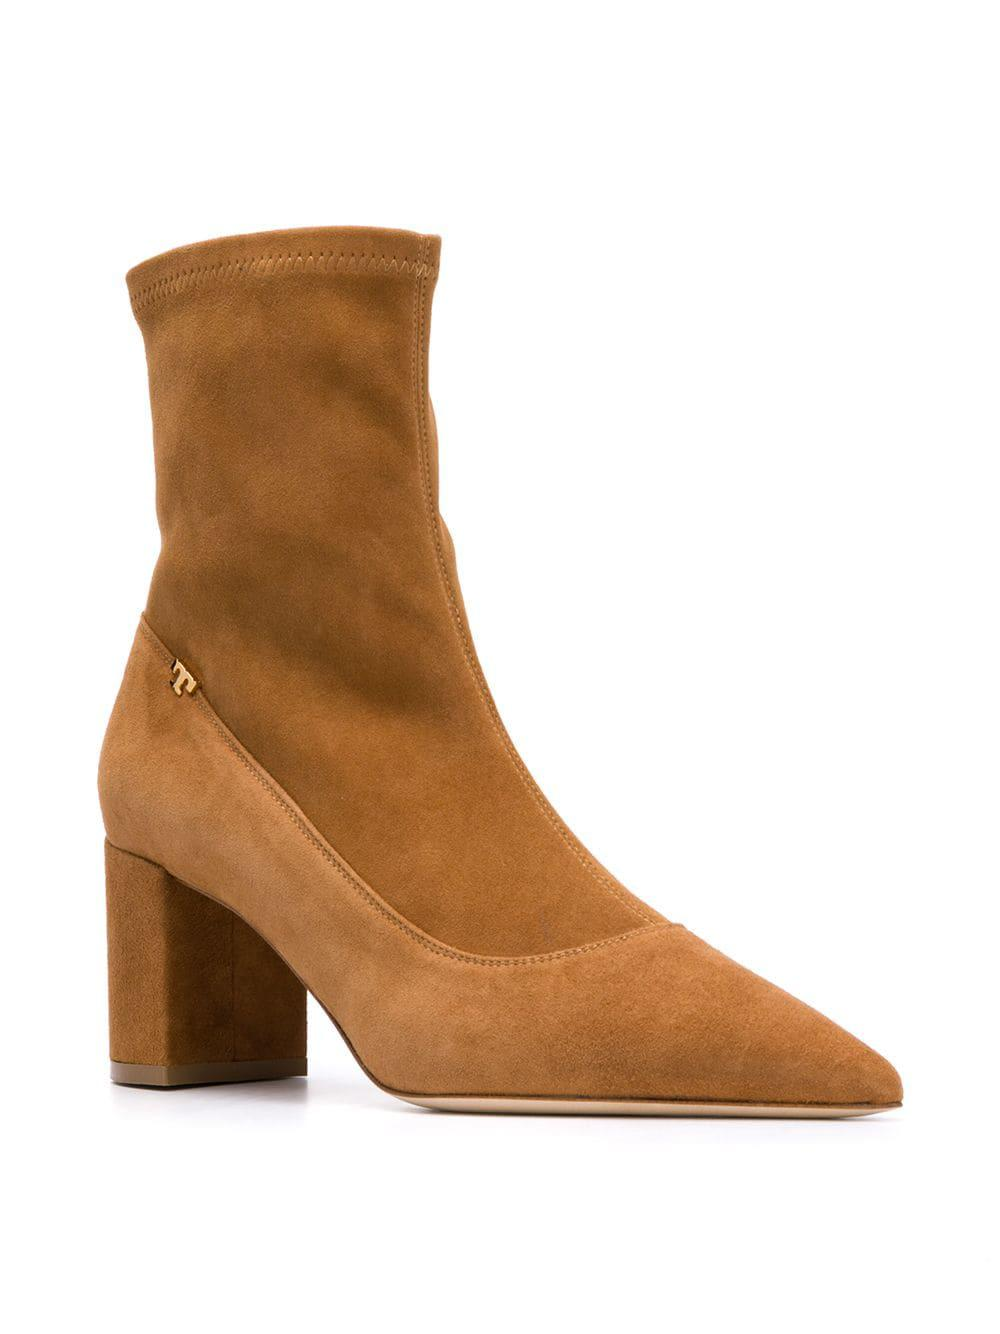 3b7bc5e7a36a Lyst - Tory Burch Pointed Ankle Boots in Brown